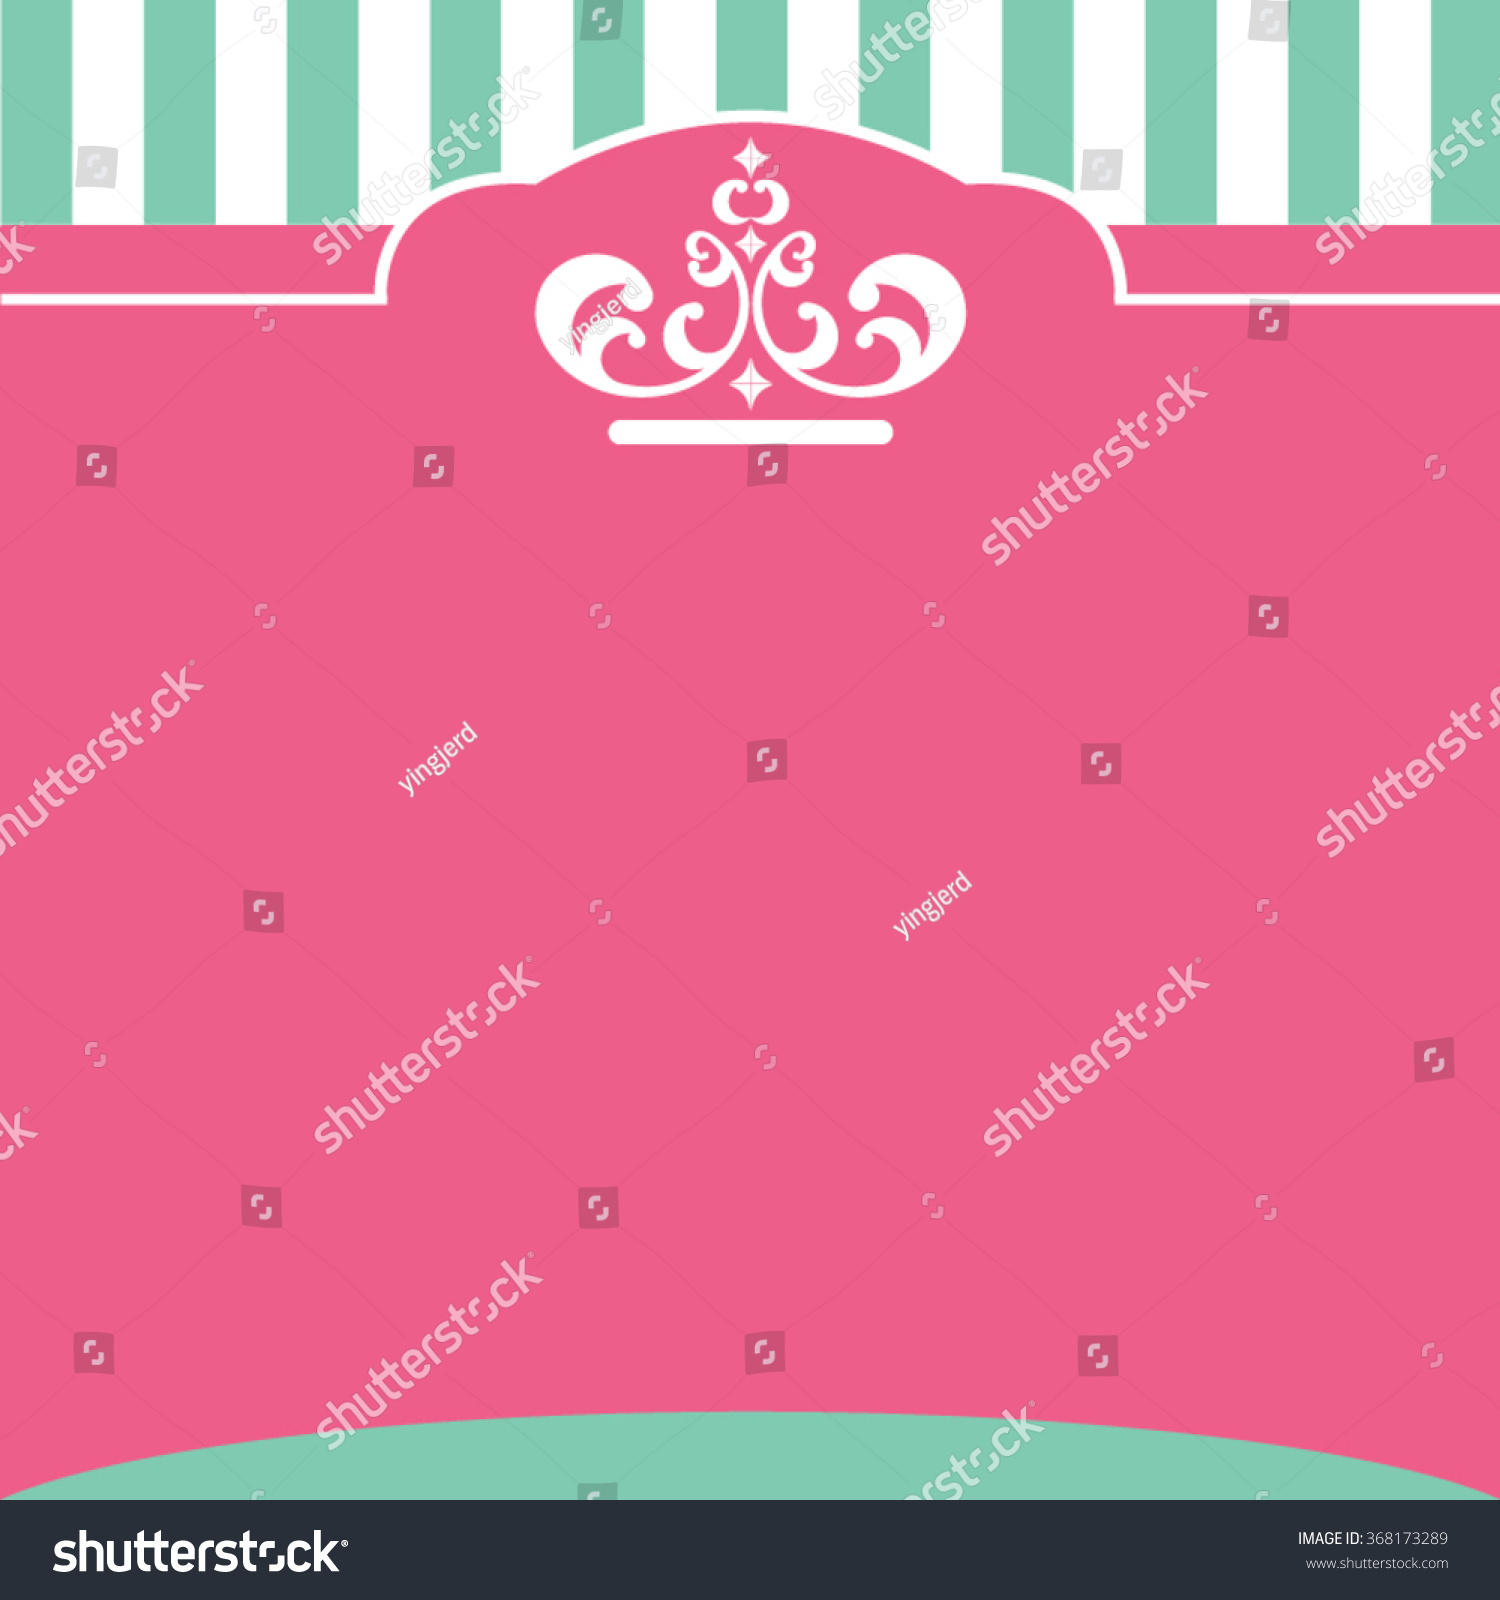 Looks - Beauty Pink background video